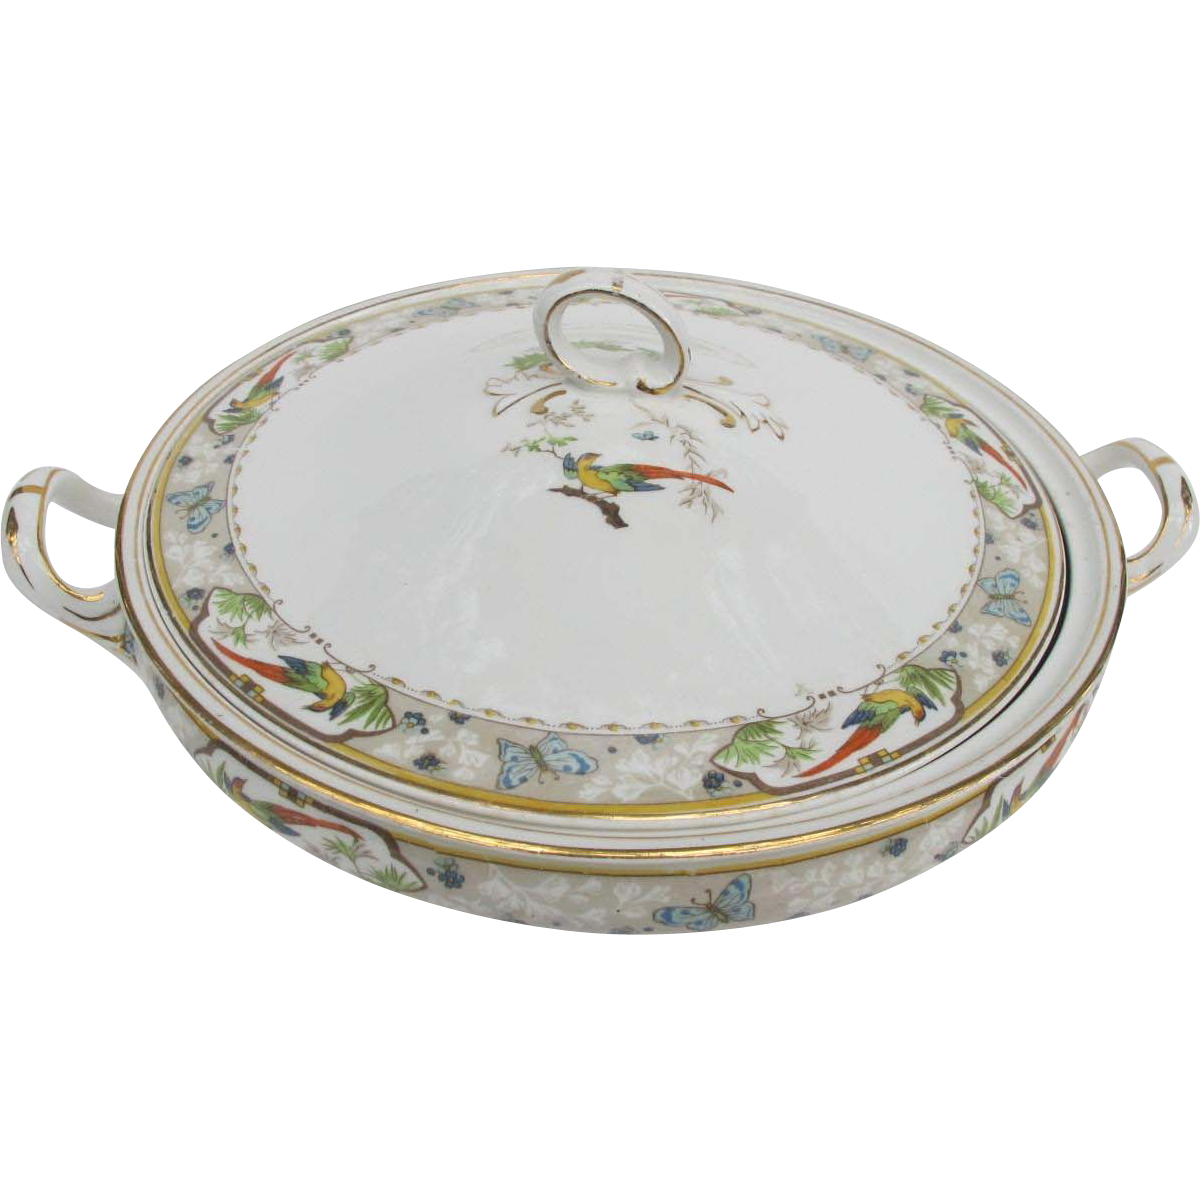 Meakin Covered Vegetable Bowl with Colorful Exotic Bird Butterflies